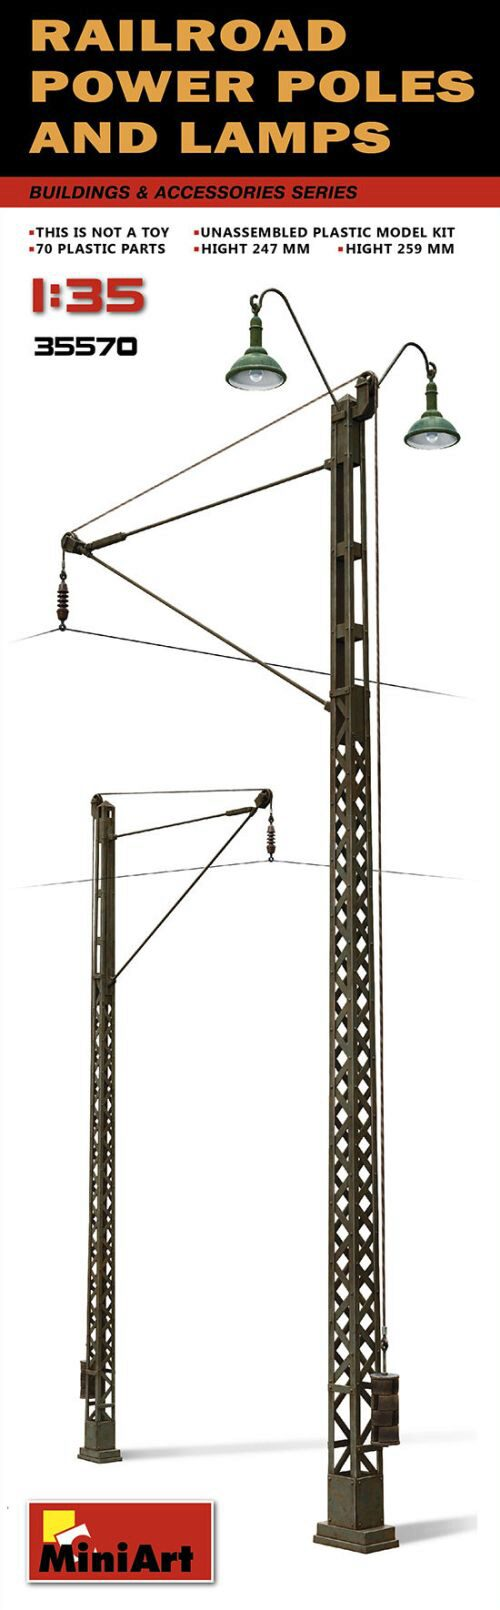 MiniArt 35570 Railroad Power Poles & Lamps